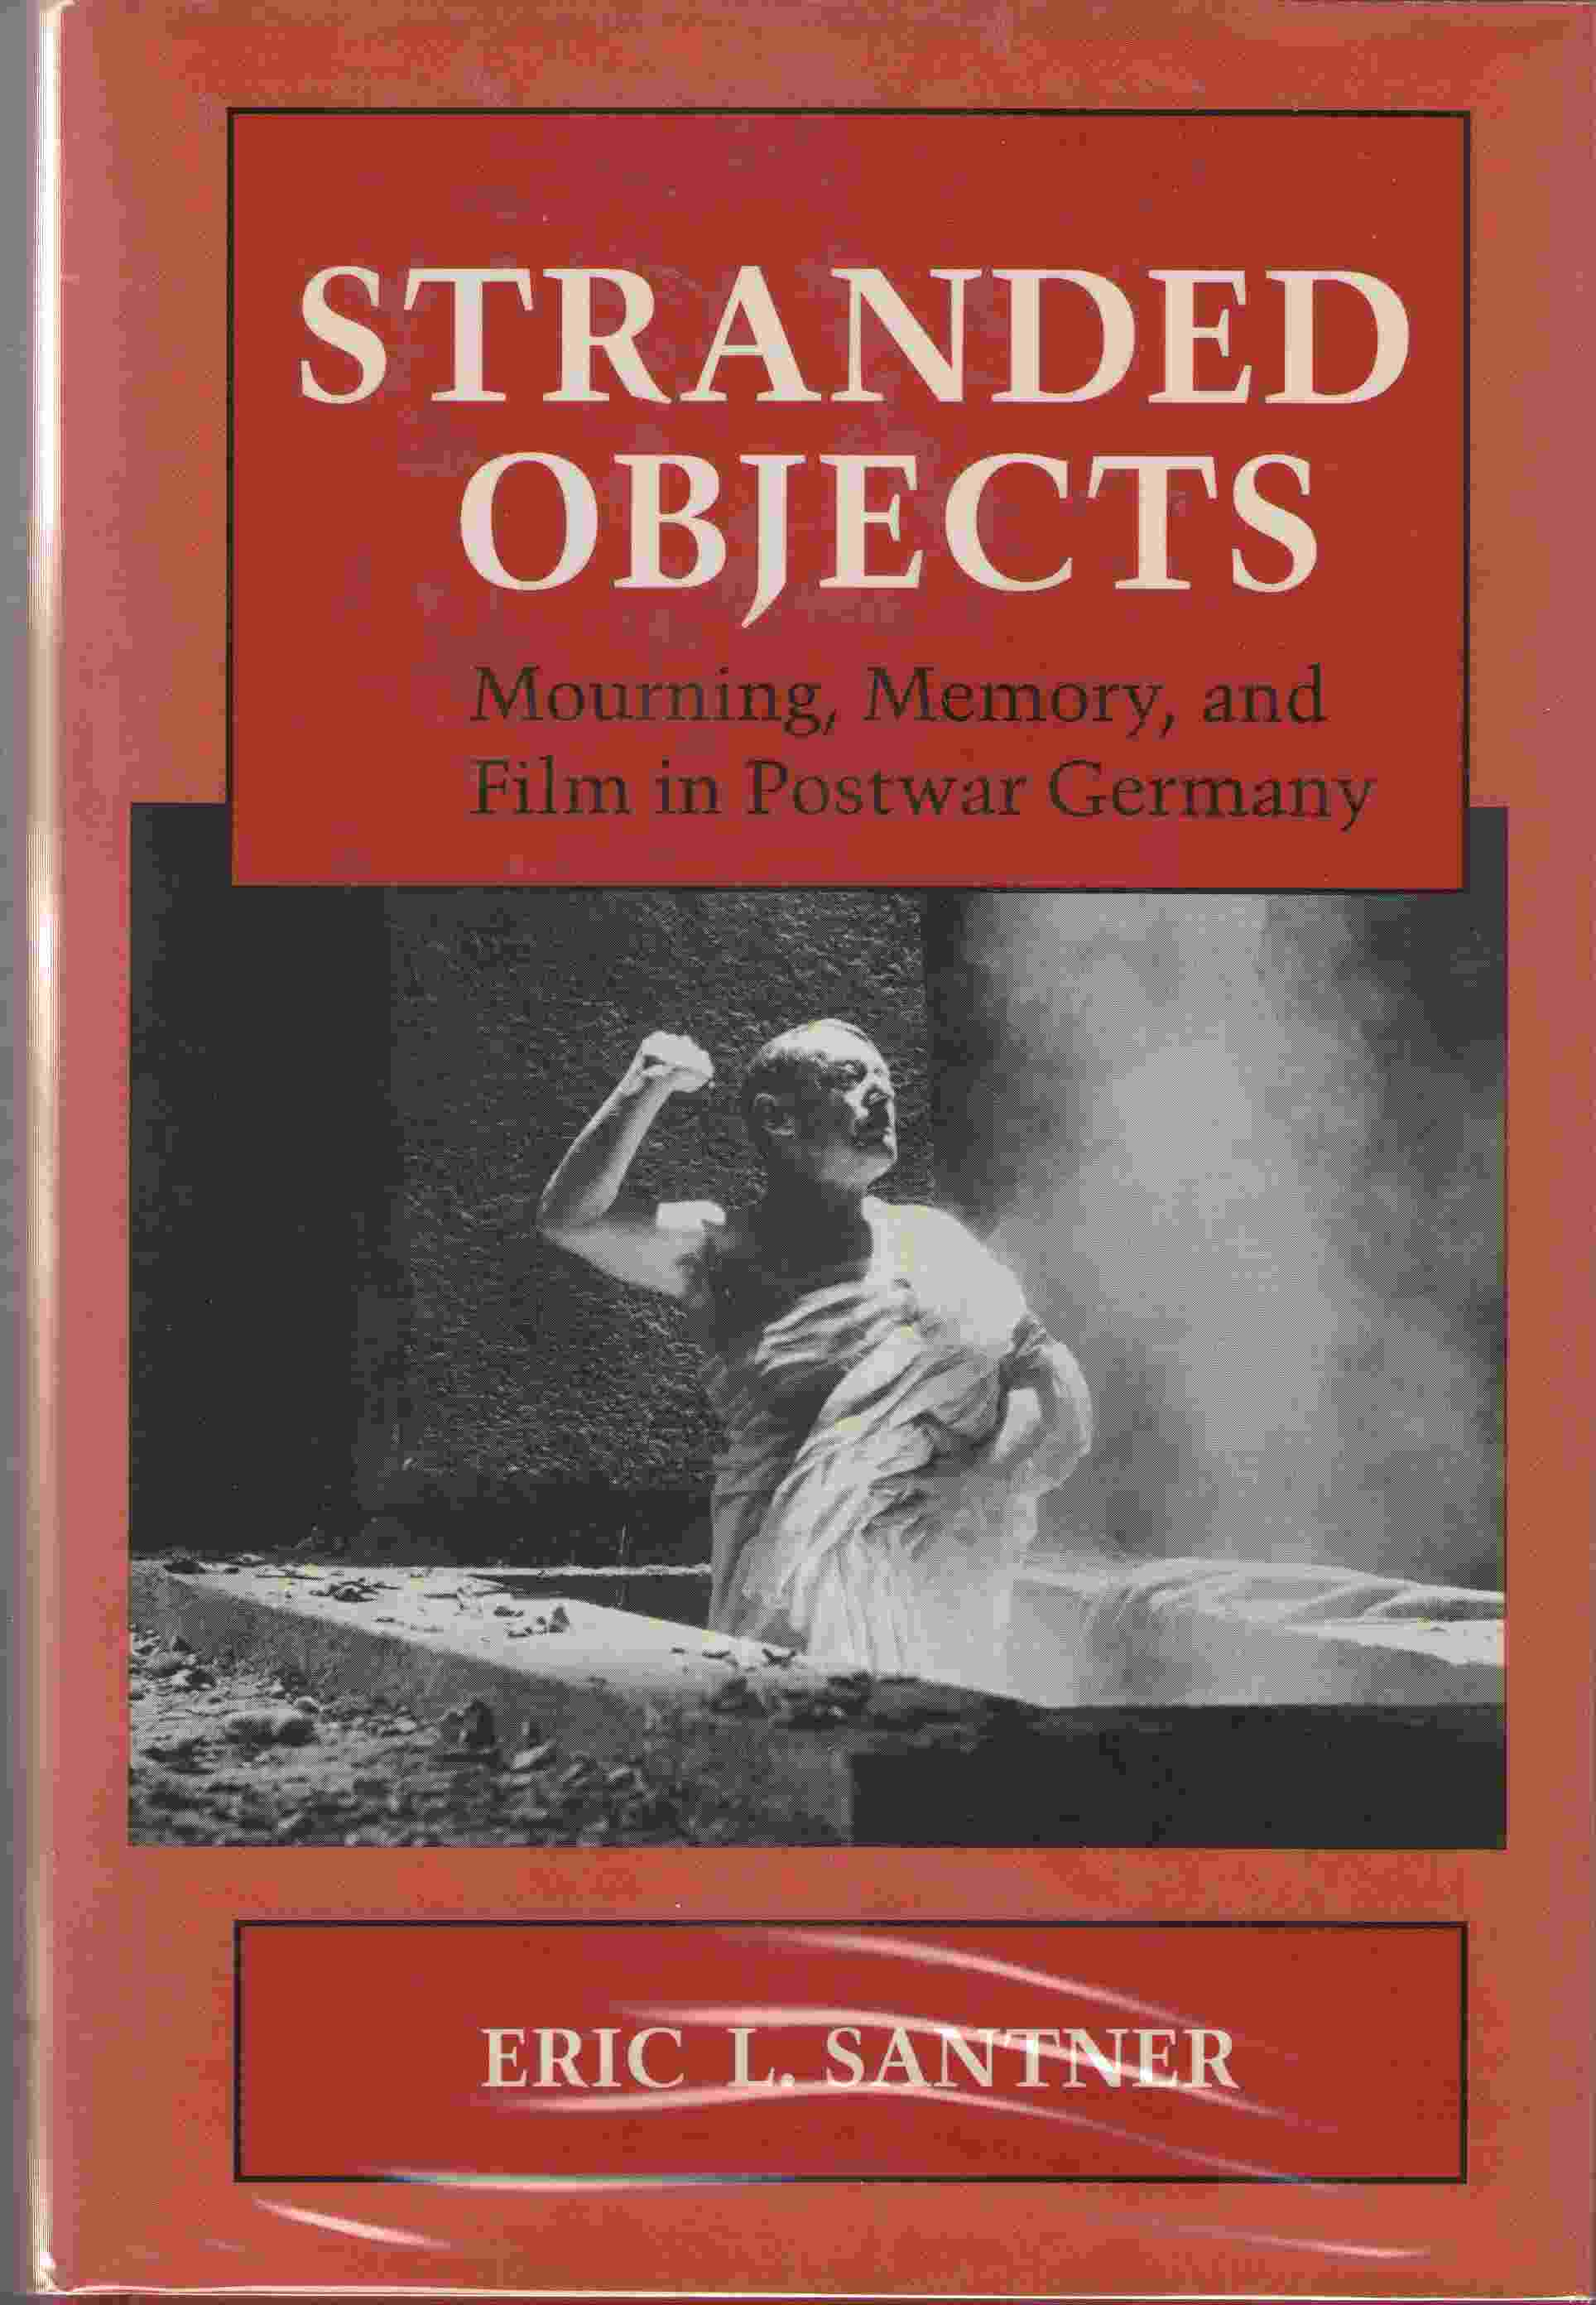 Stranded Objects  Mourning, Memory, and Film in Postwar Germany, Santner, Eric L.